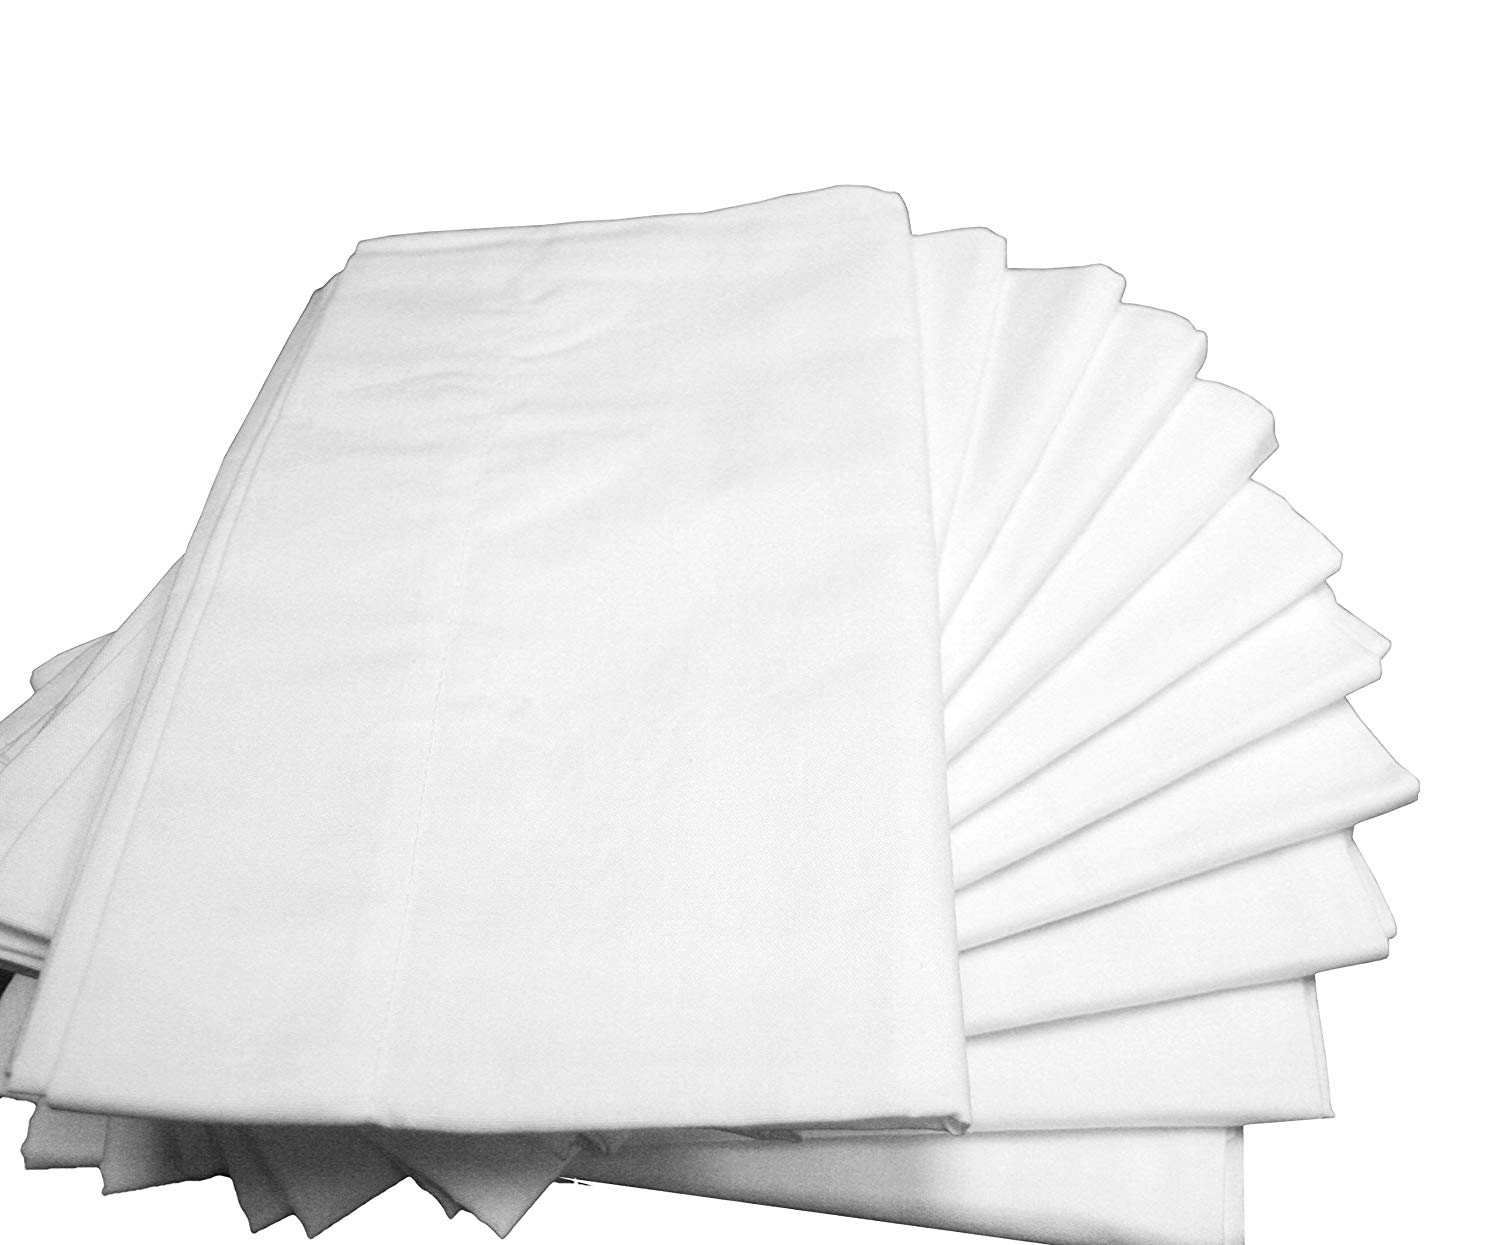 chair covers in bulk blue sling patio cheap find deals on line at get quotations atlas polycotton pack of 6 standard size b grade pillowcases 130 thread count economy